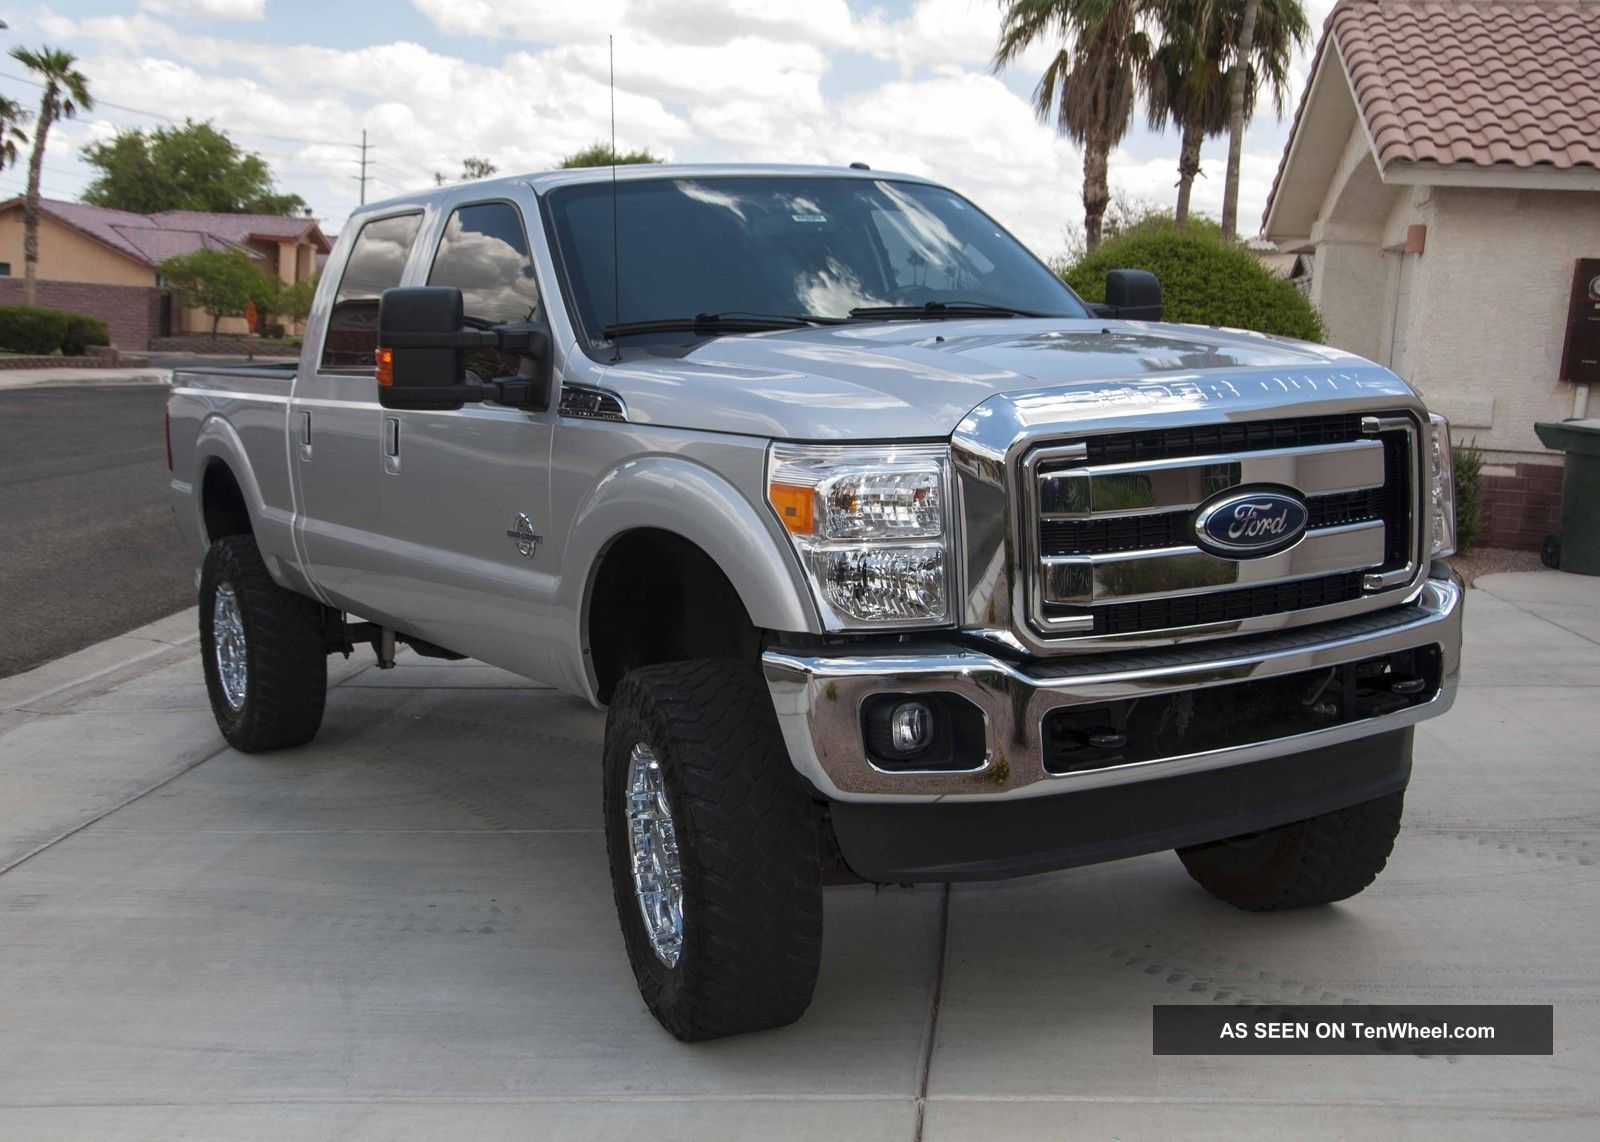 Powerstroke 7 3 Dual Alternator Wiring Diagram together with 2006 Chevy Colorado Fuel Pressure Regulator together with 2017 Nissan Armada Models furthermore London Tube Map besides Honda CB750 Wiring Diagram. on ford f 350 wiring diagram